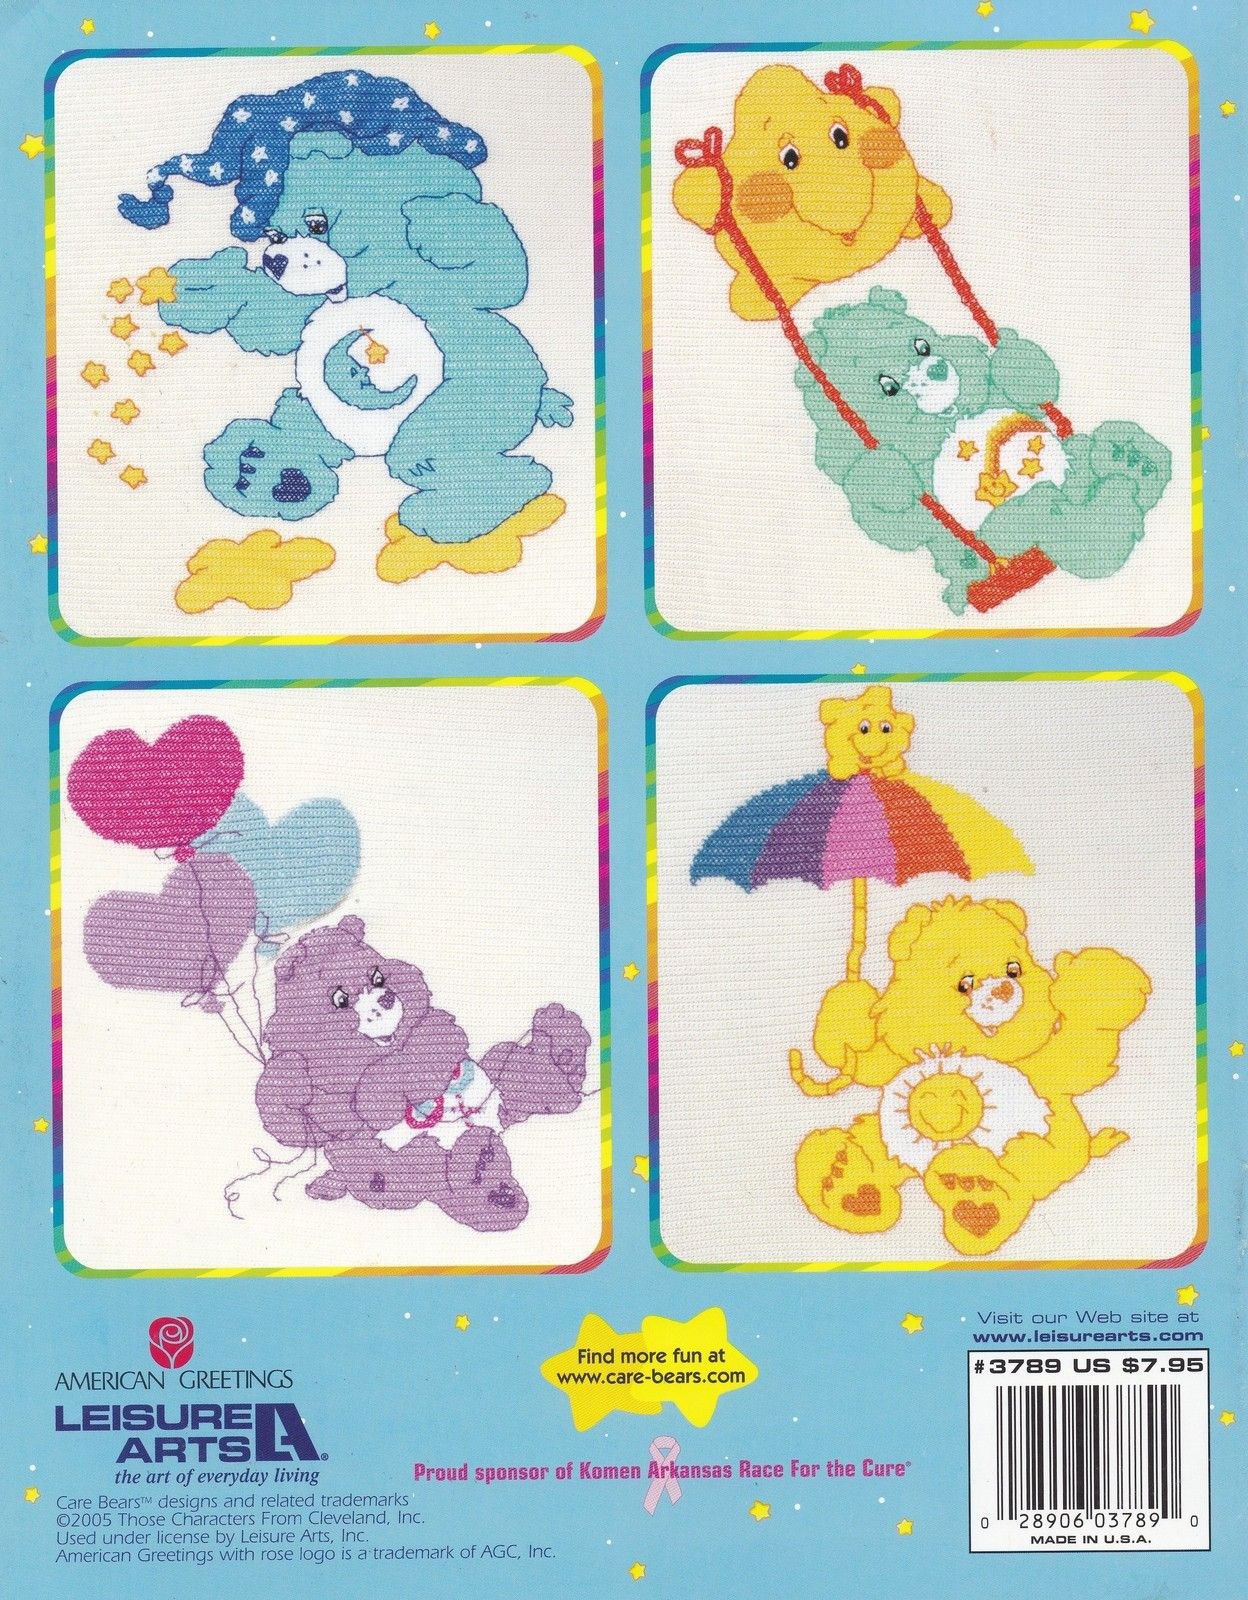 Care bears afghans leisure arts crochet pattern book 3789 share care bears afghans leisure arts crochet pattern book 3789 share wish cheer bear dolls bankloansurffo Choice Image